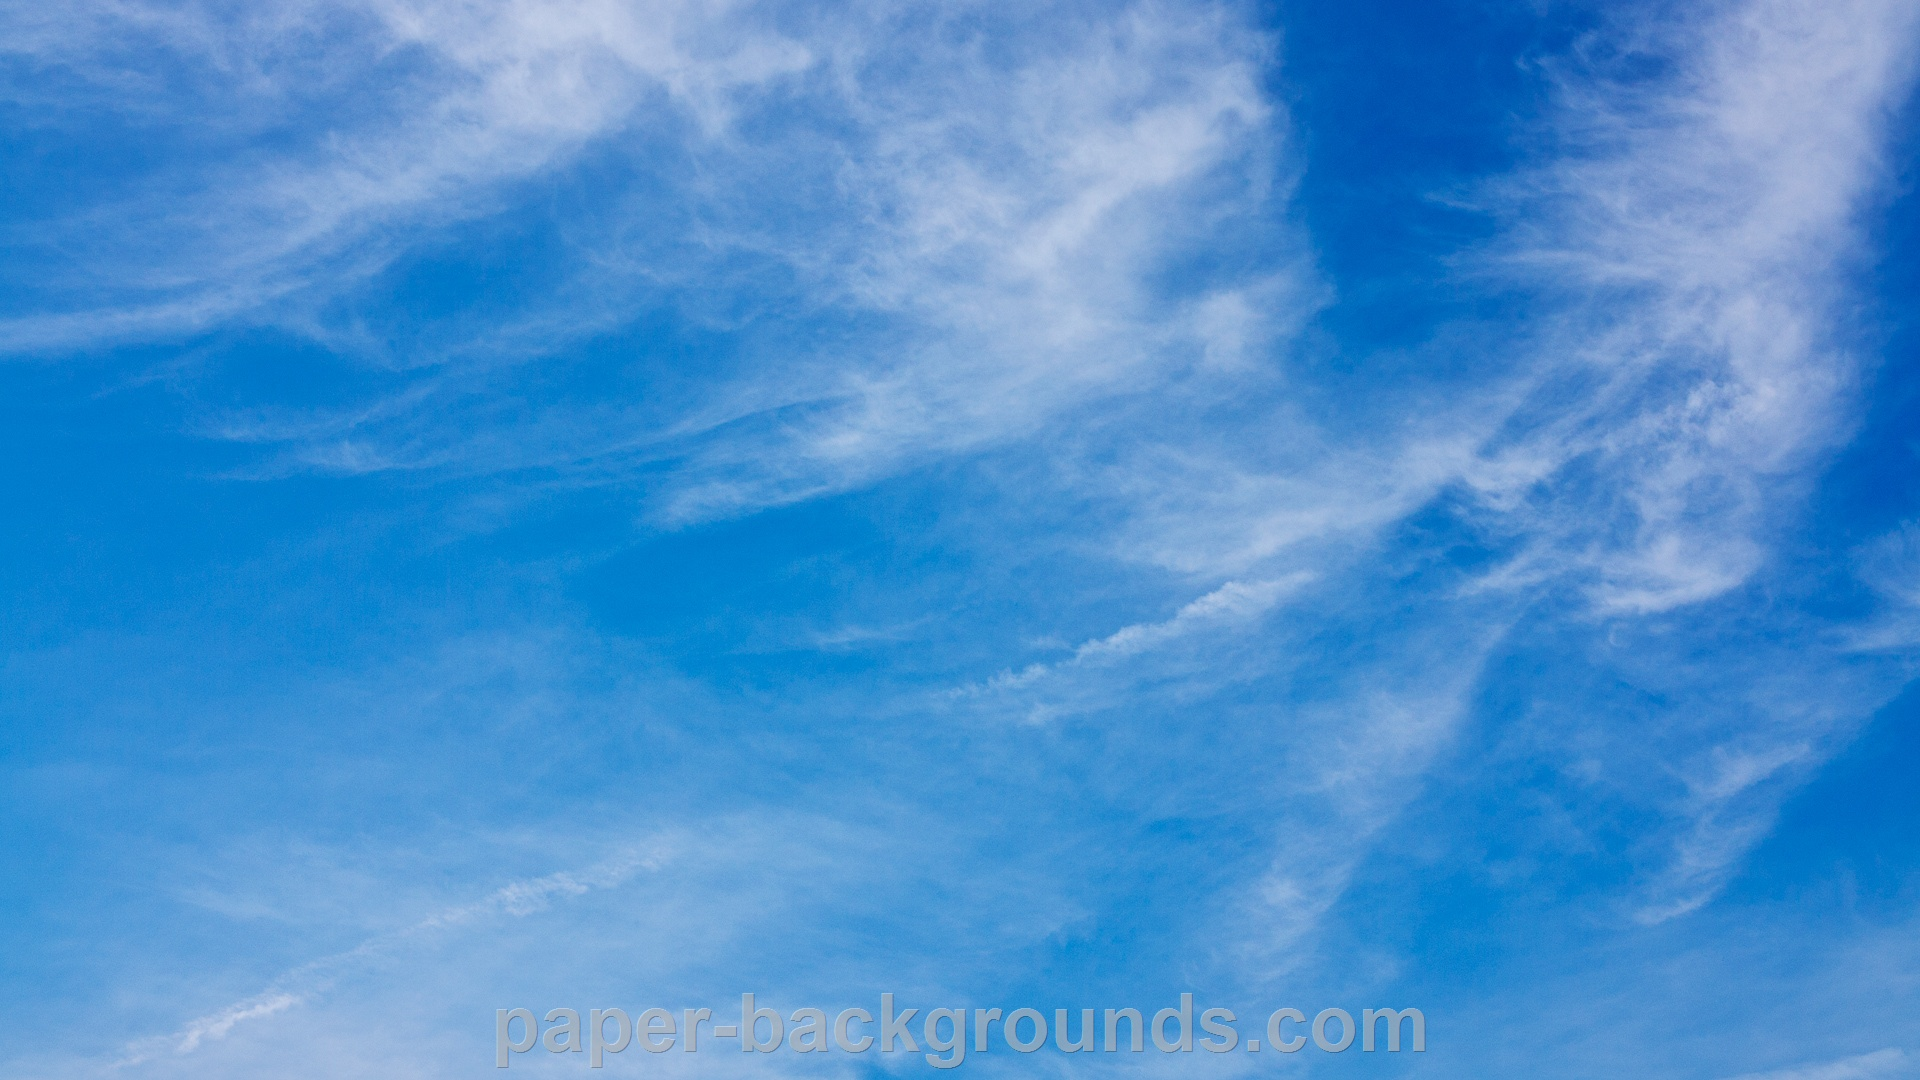 Blue Sky Background Hd 1920 X 1080p Pictures 1920x1080